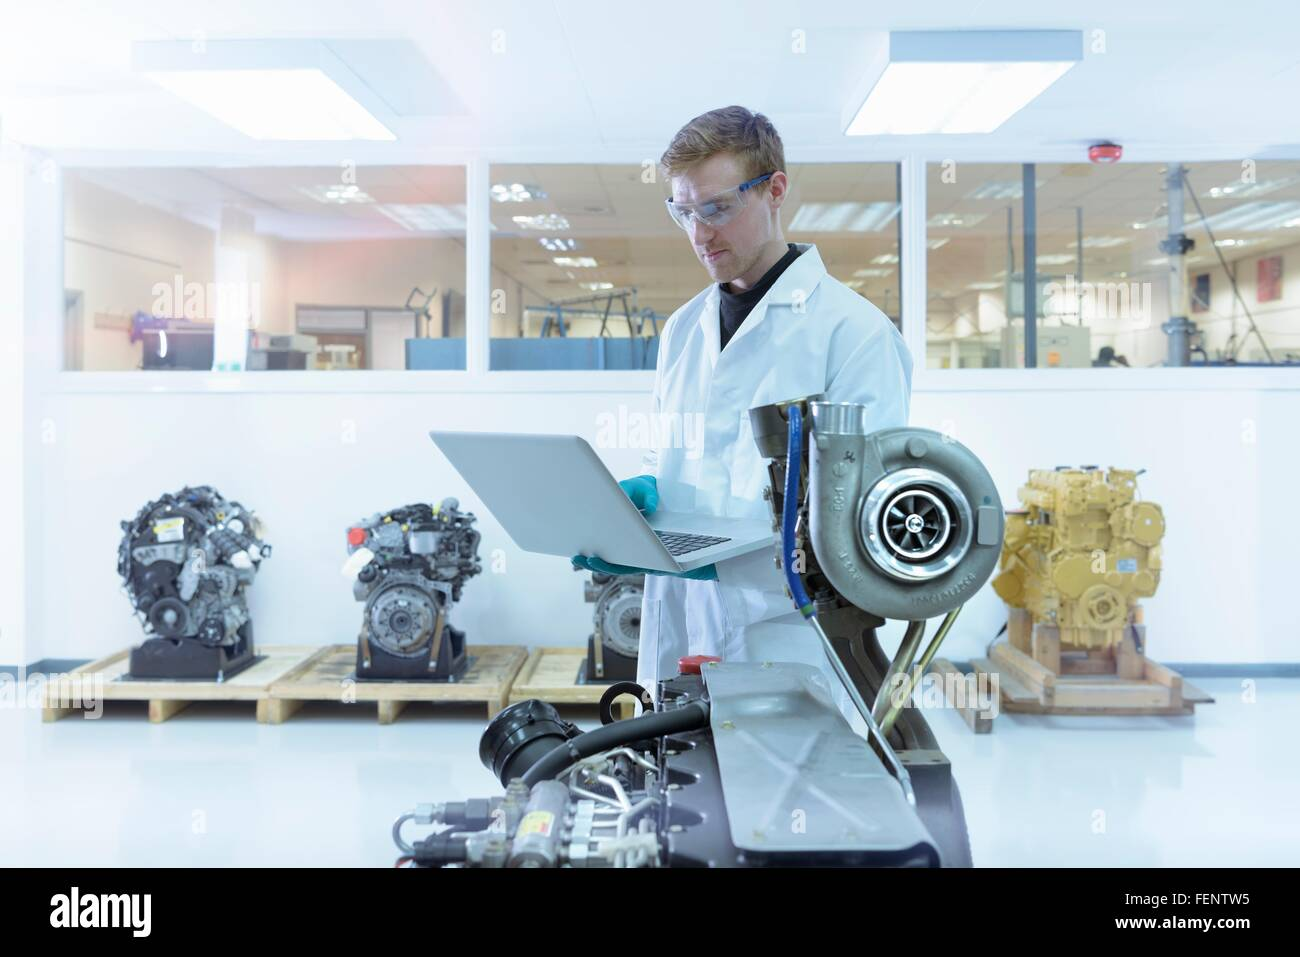 Scientist using laptop in turbo charger automotive research laboratory - Stock Image